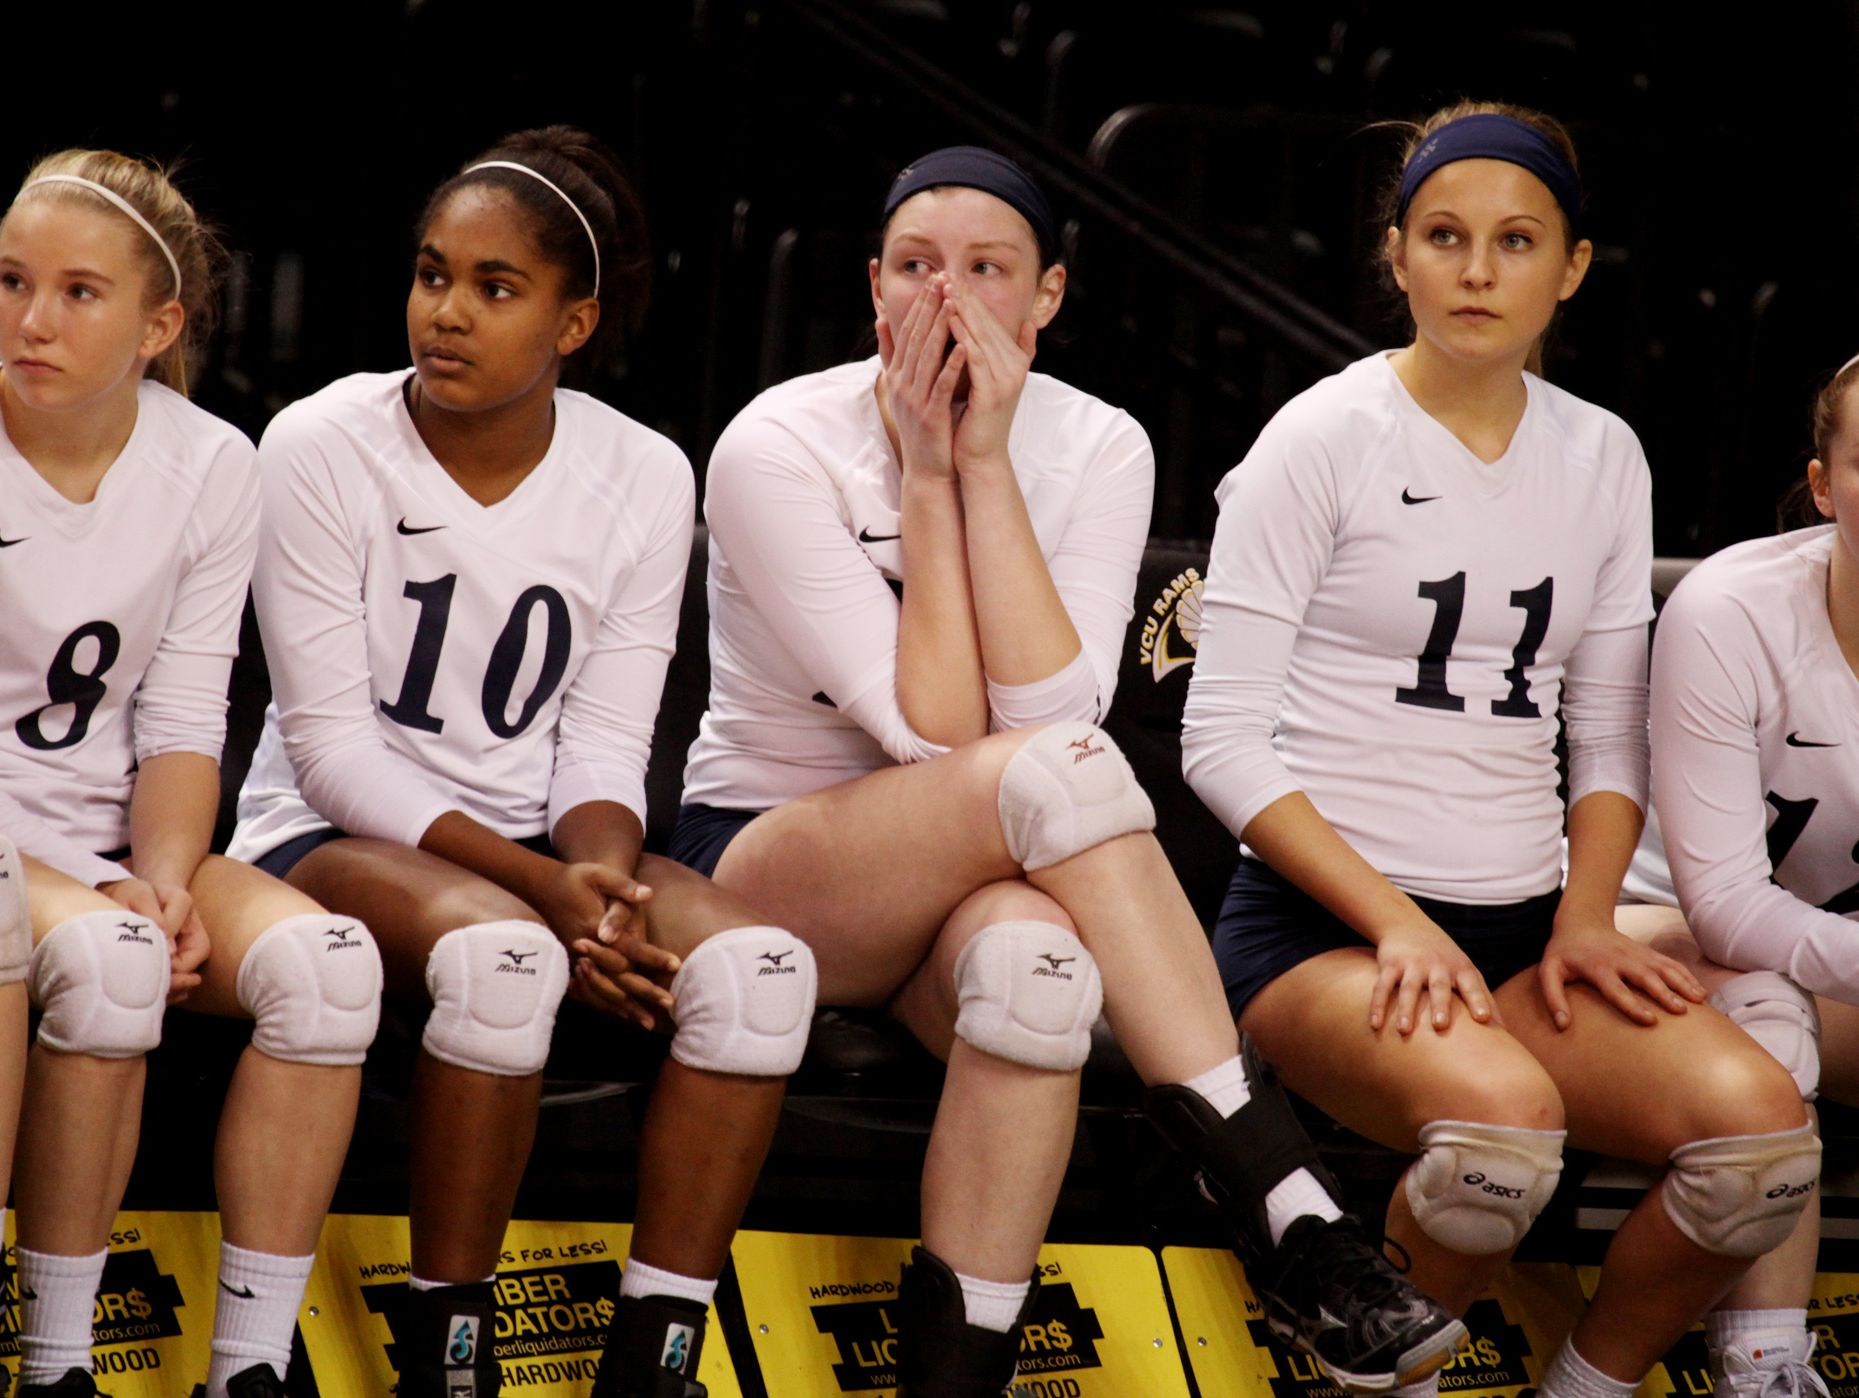 R.E. Lee players wait for awards after their loss to Marion Senior at the Virginia High School League 2A Girls Volleyball State Championship held at the Virginia Commonwealth University's Stuart C. Siegel Center in Richmond on Saturday November 19, 2016.